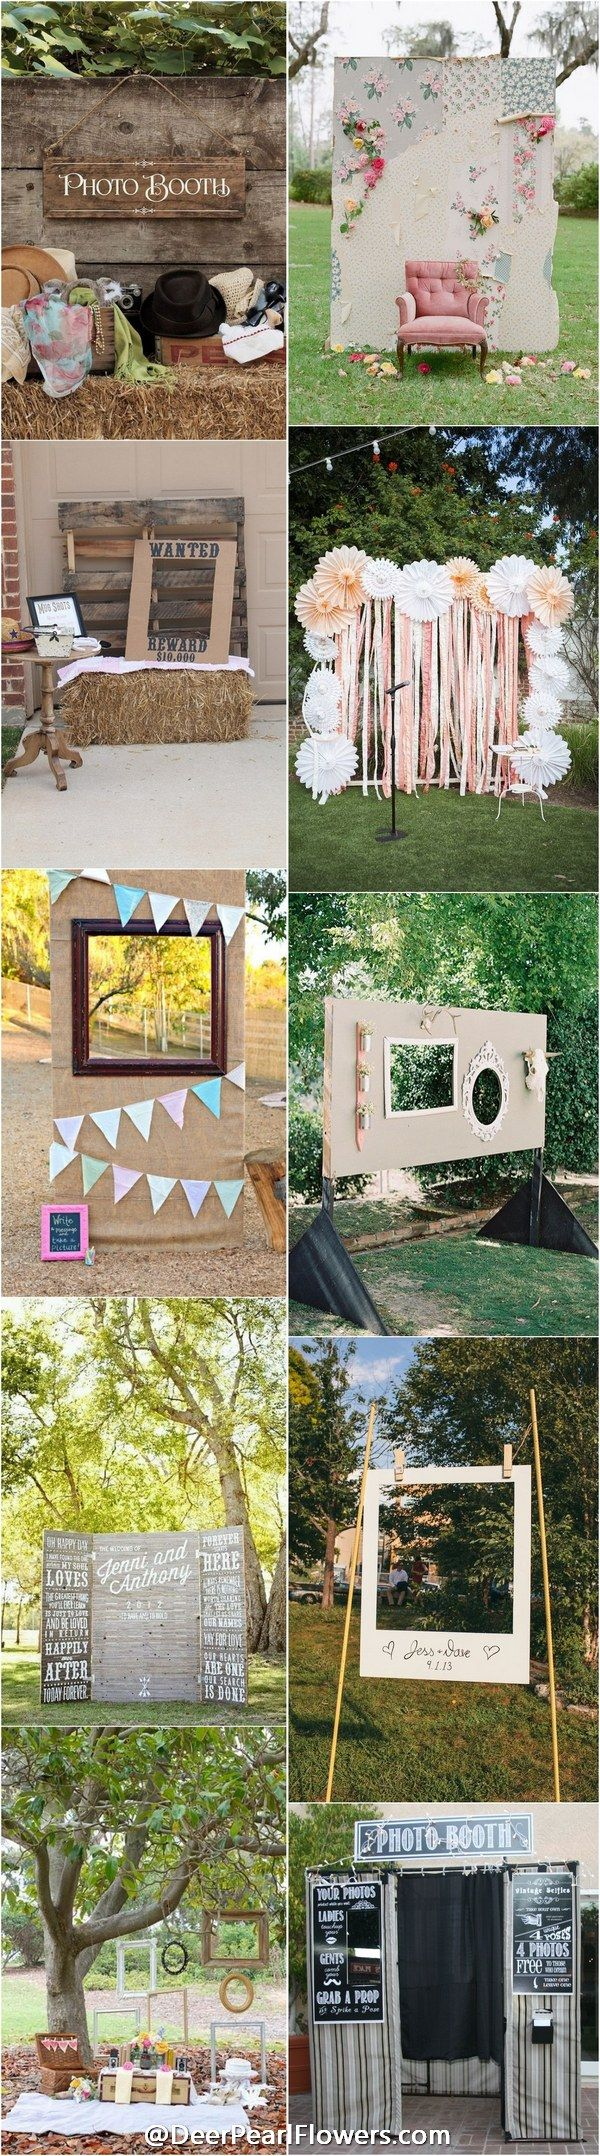 20 brilliant wedding photo booth ideas photo booth backdrop wedding photo booth backdrop ideas rustic country wedding ideas httpdeerpearlflowersbrilliant wedding photo booth ideas solutioingenieria Images